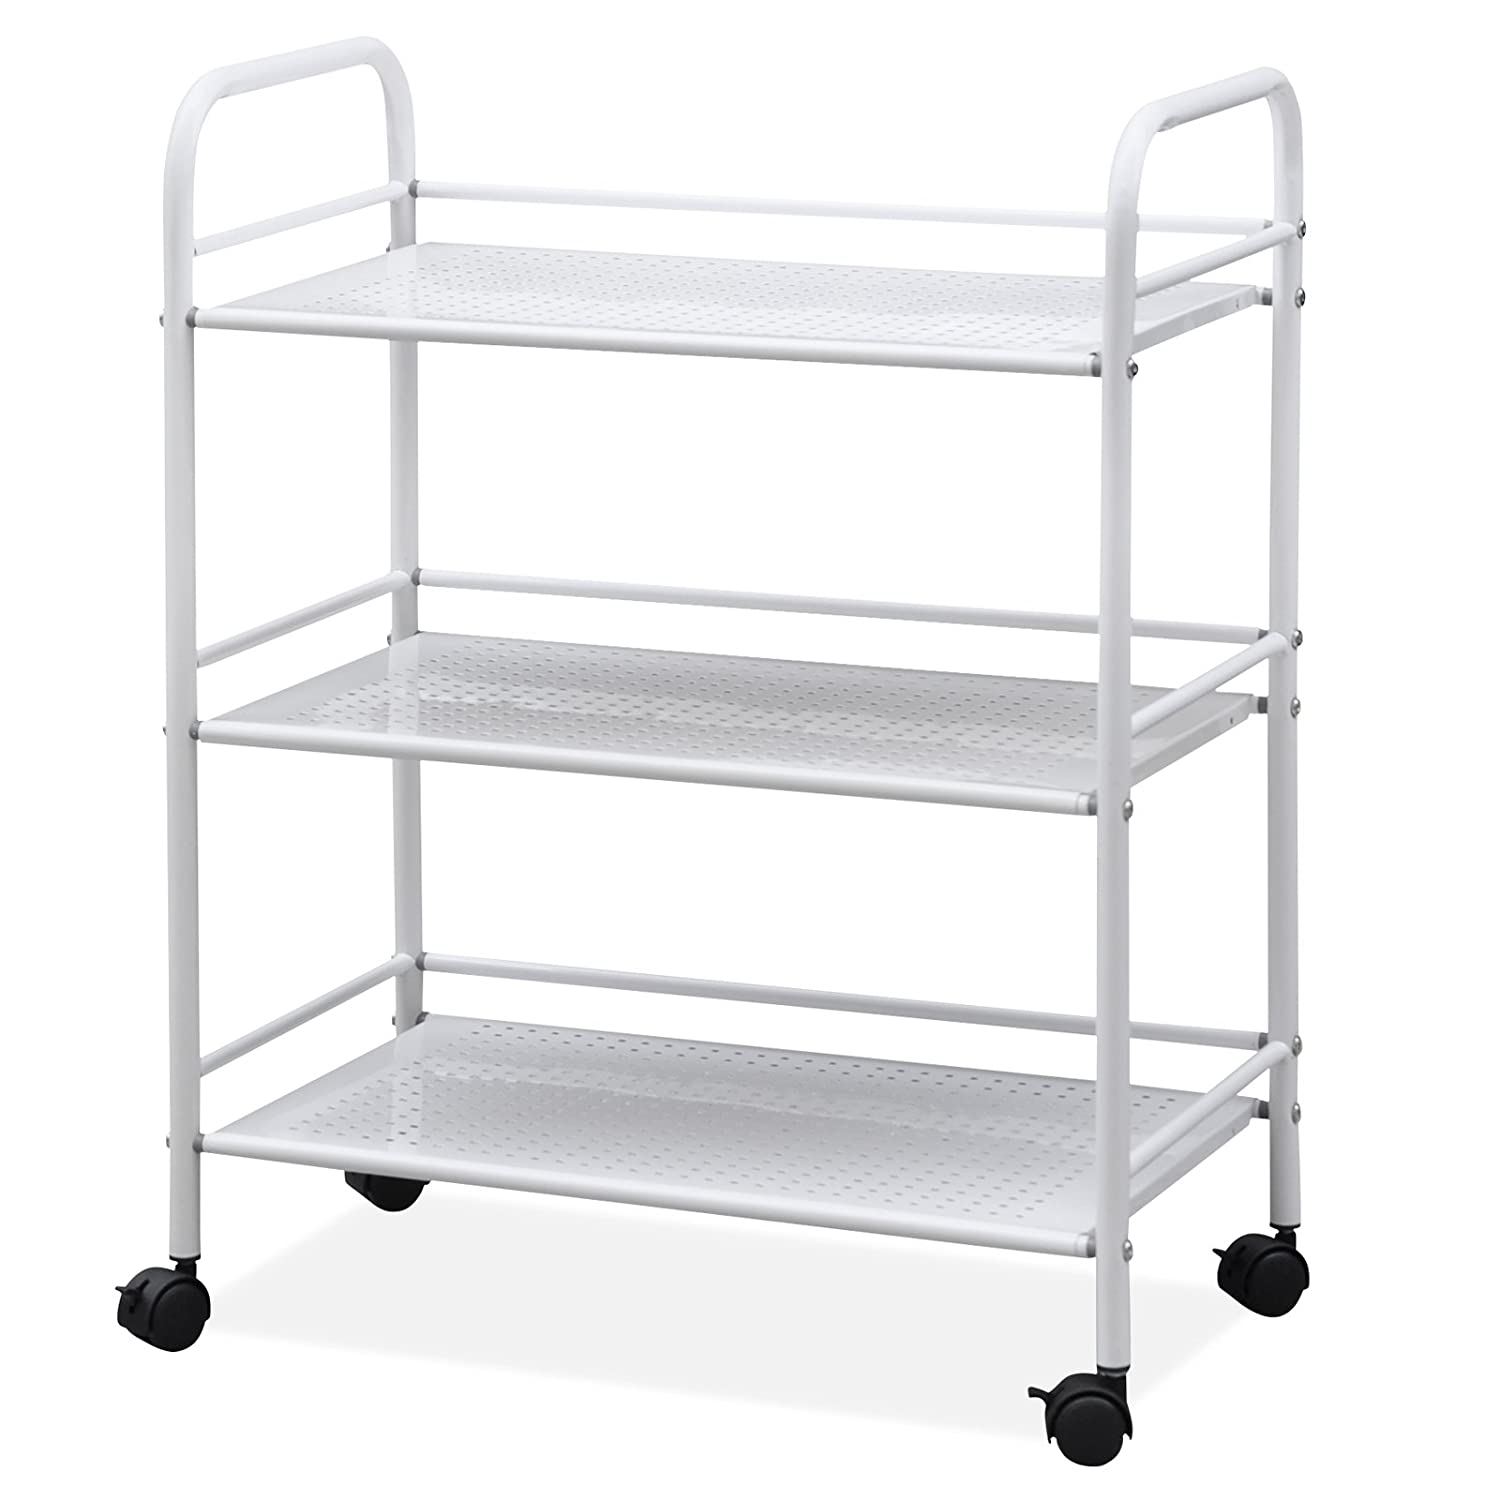 Outdoortips 3-Tier Beauty Salon Storage Cart Dentist Wax Treatment Tattoo Shelf Trolley (L) OD-1013